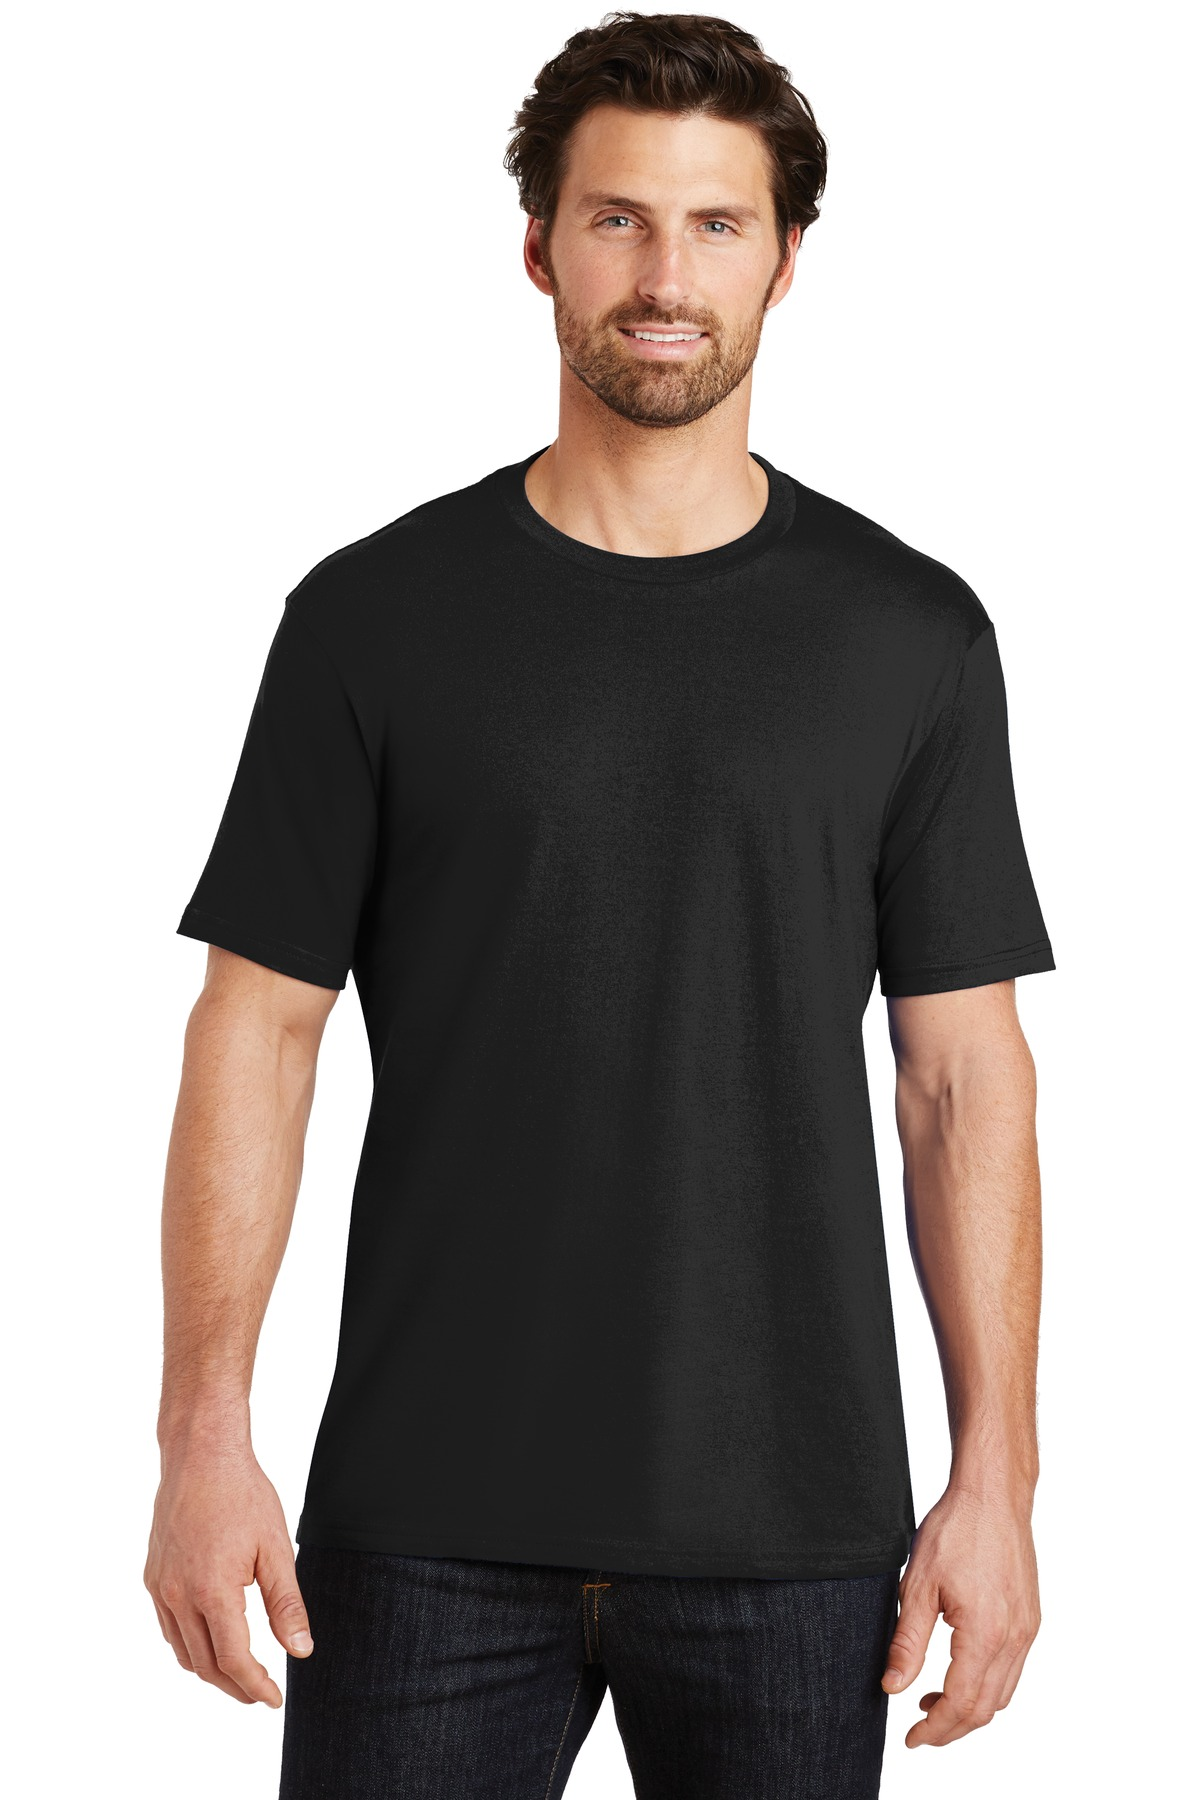 District ®  Perfect Weight ® Tee. DT104 - Jet Black